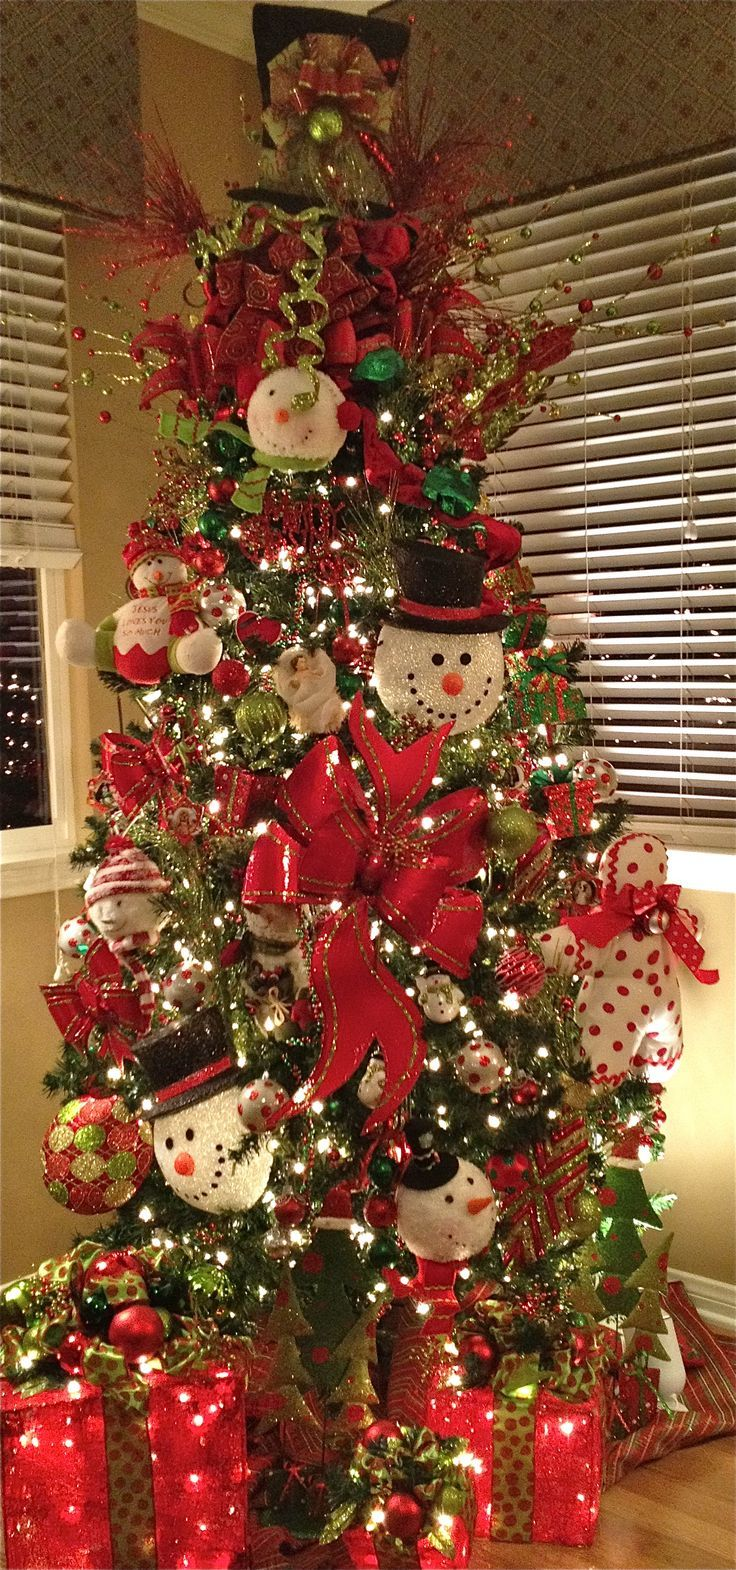 Christmas Tree Designs and Decor Ideas for 2014 15 & Christmas Tree Designs and Decor Ideas for 2014 15 - Design Trends Blog